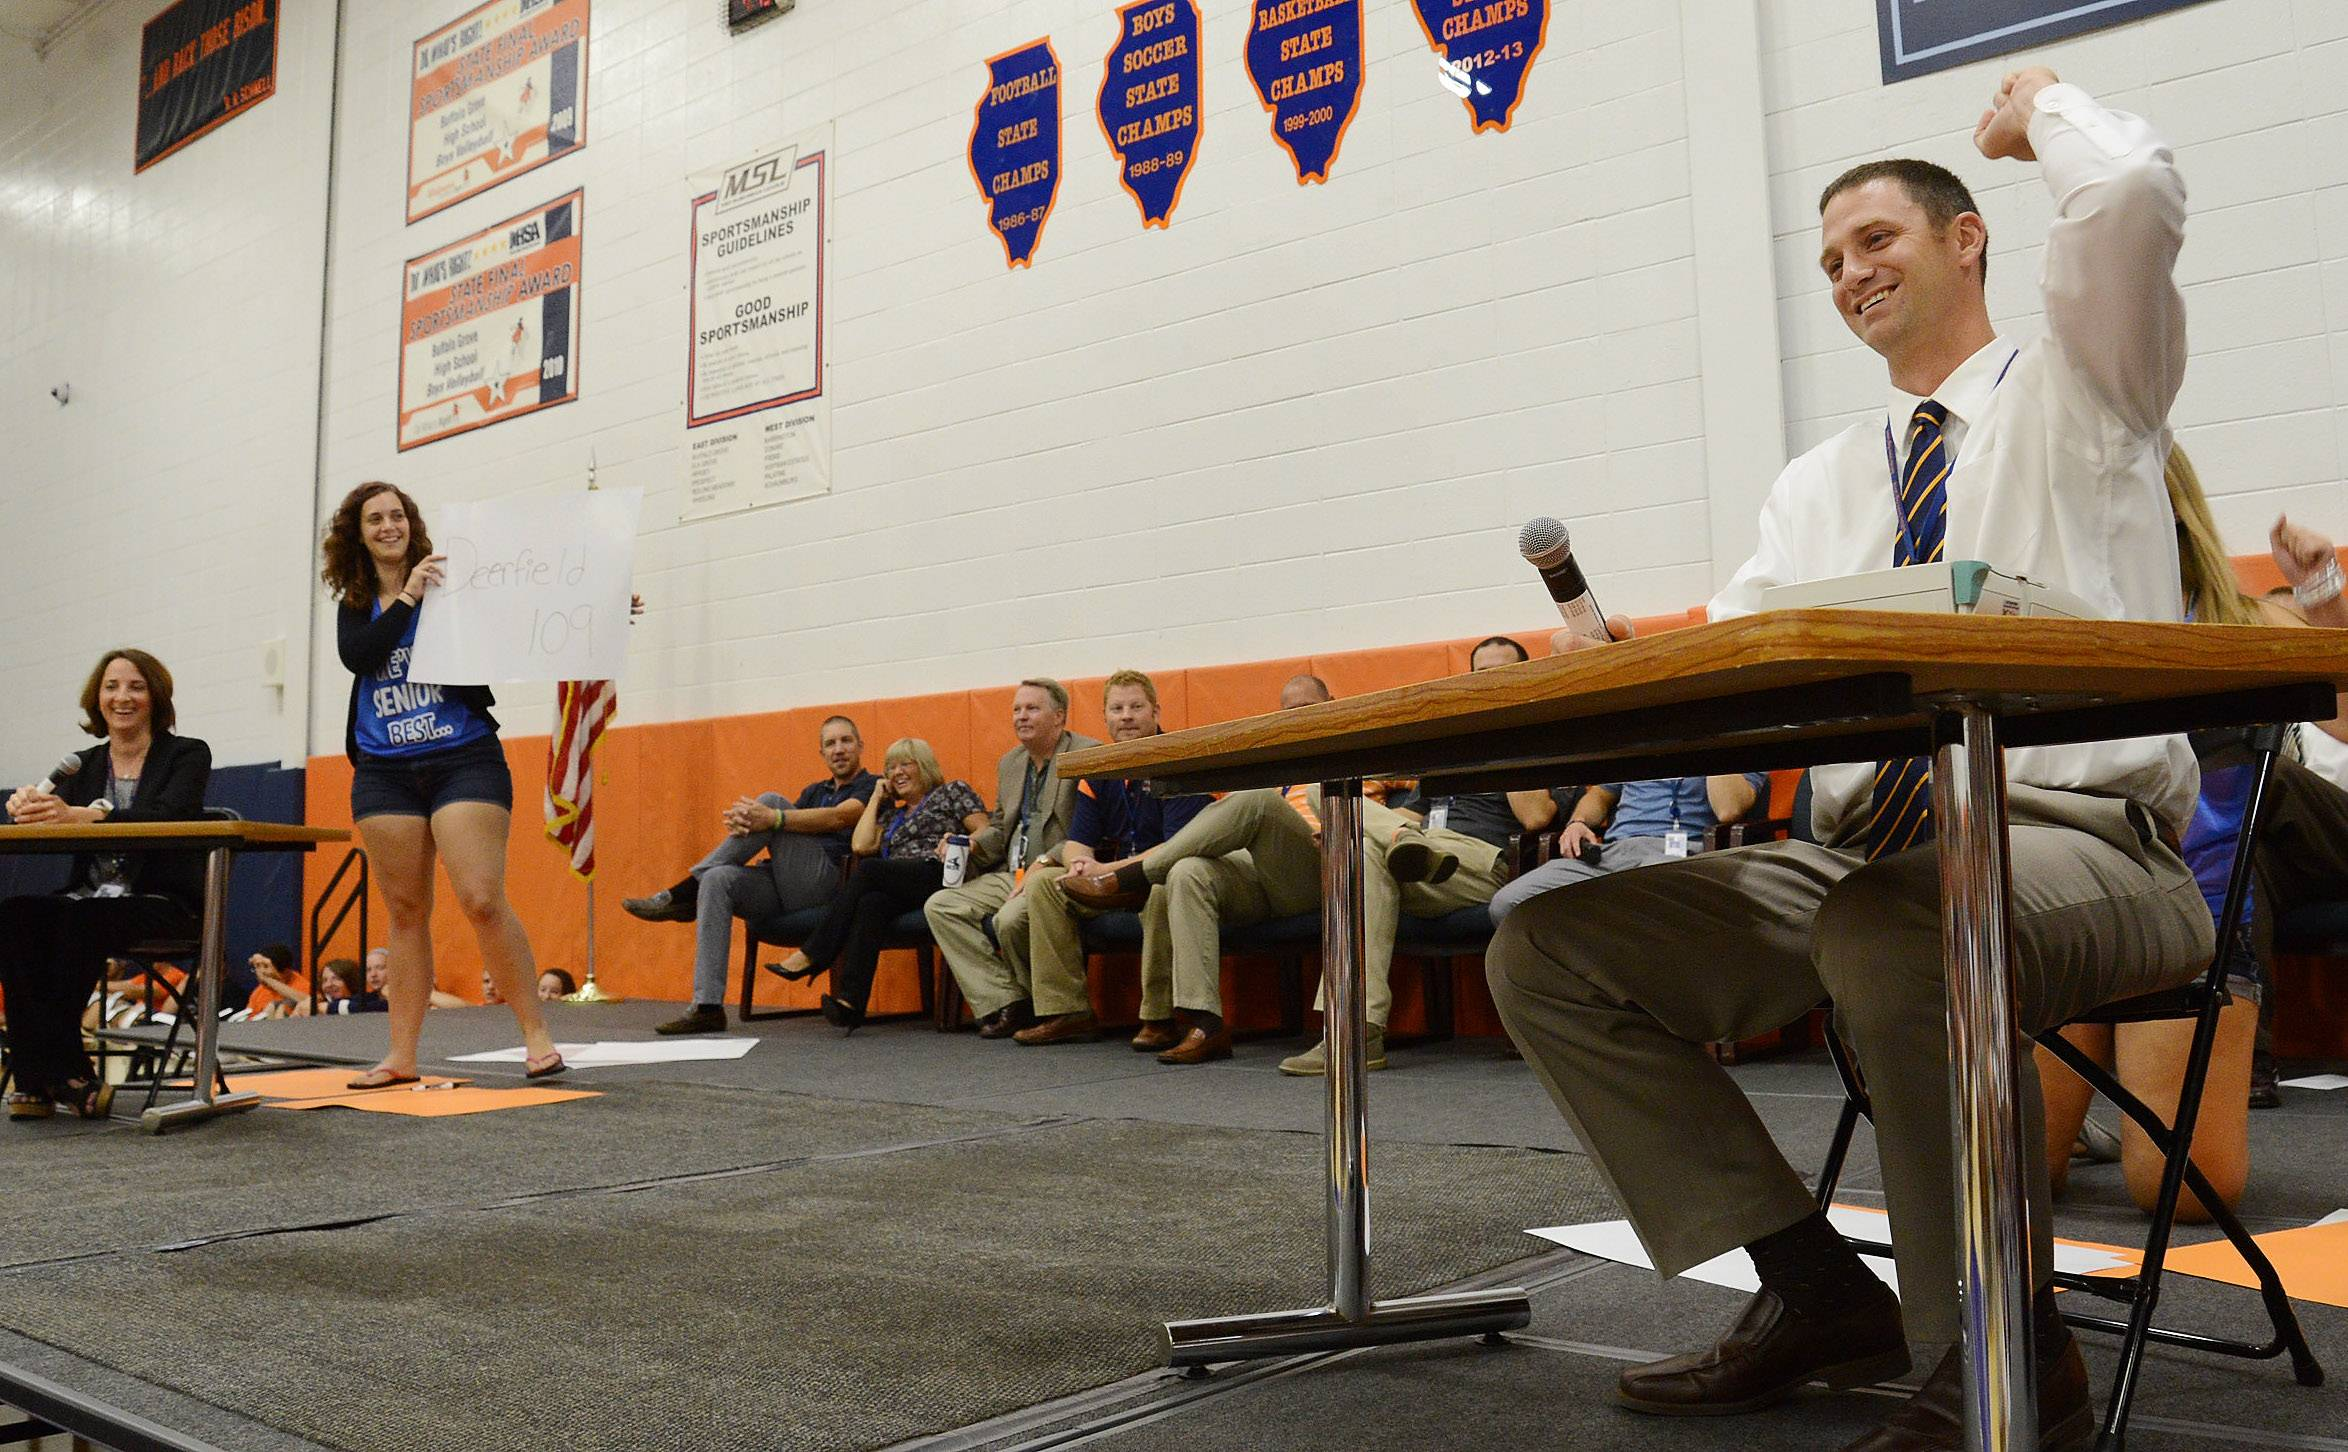 New Buffalo Grove High School principal Jeff Wardle, right, and associate principal Jill Maraldo, far left, compete in a game show, answering questions about themselves and how much knowledge they have of Buffalo Grove High School, during a back-to-school pep rally Wednesday.